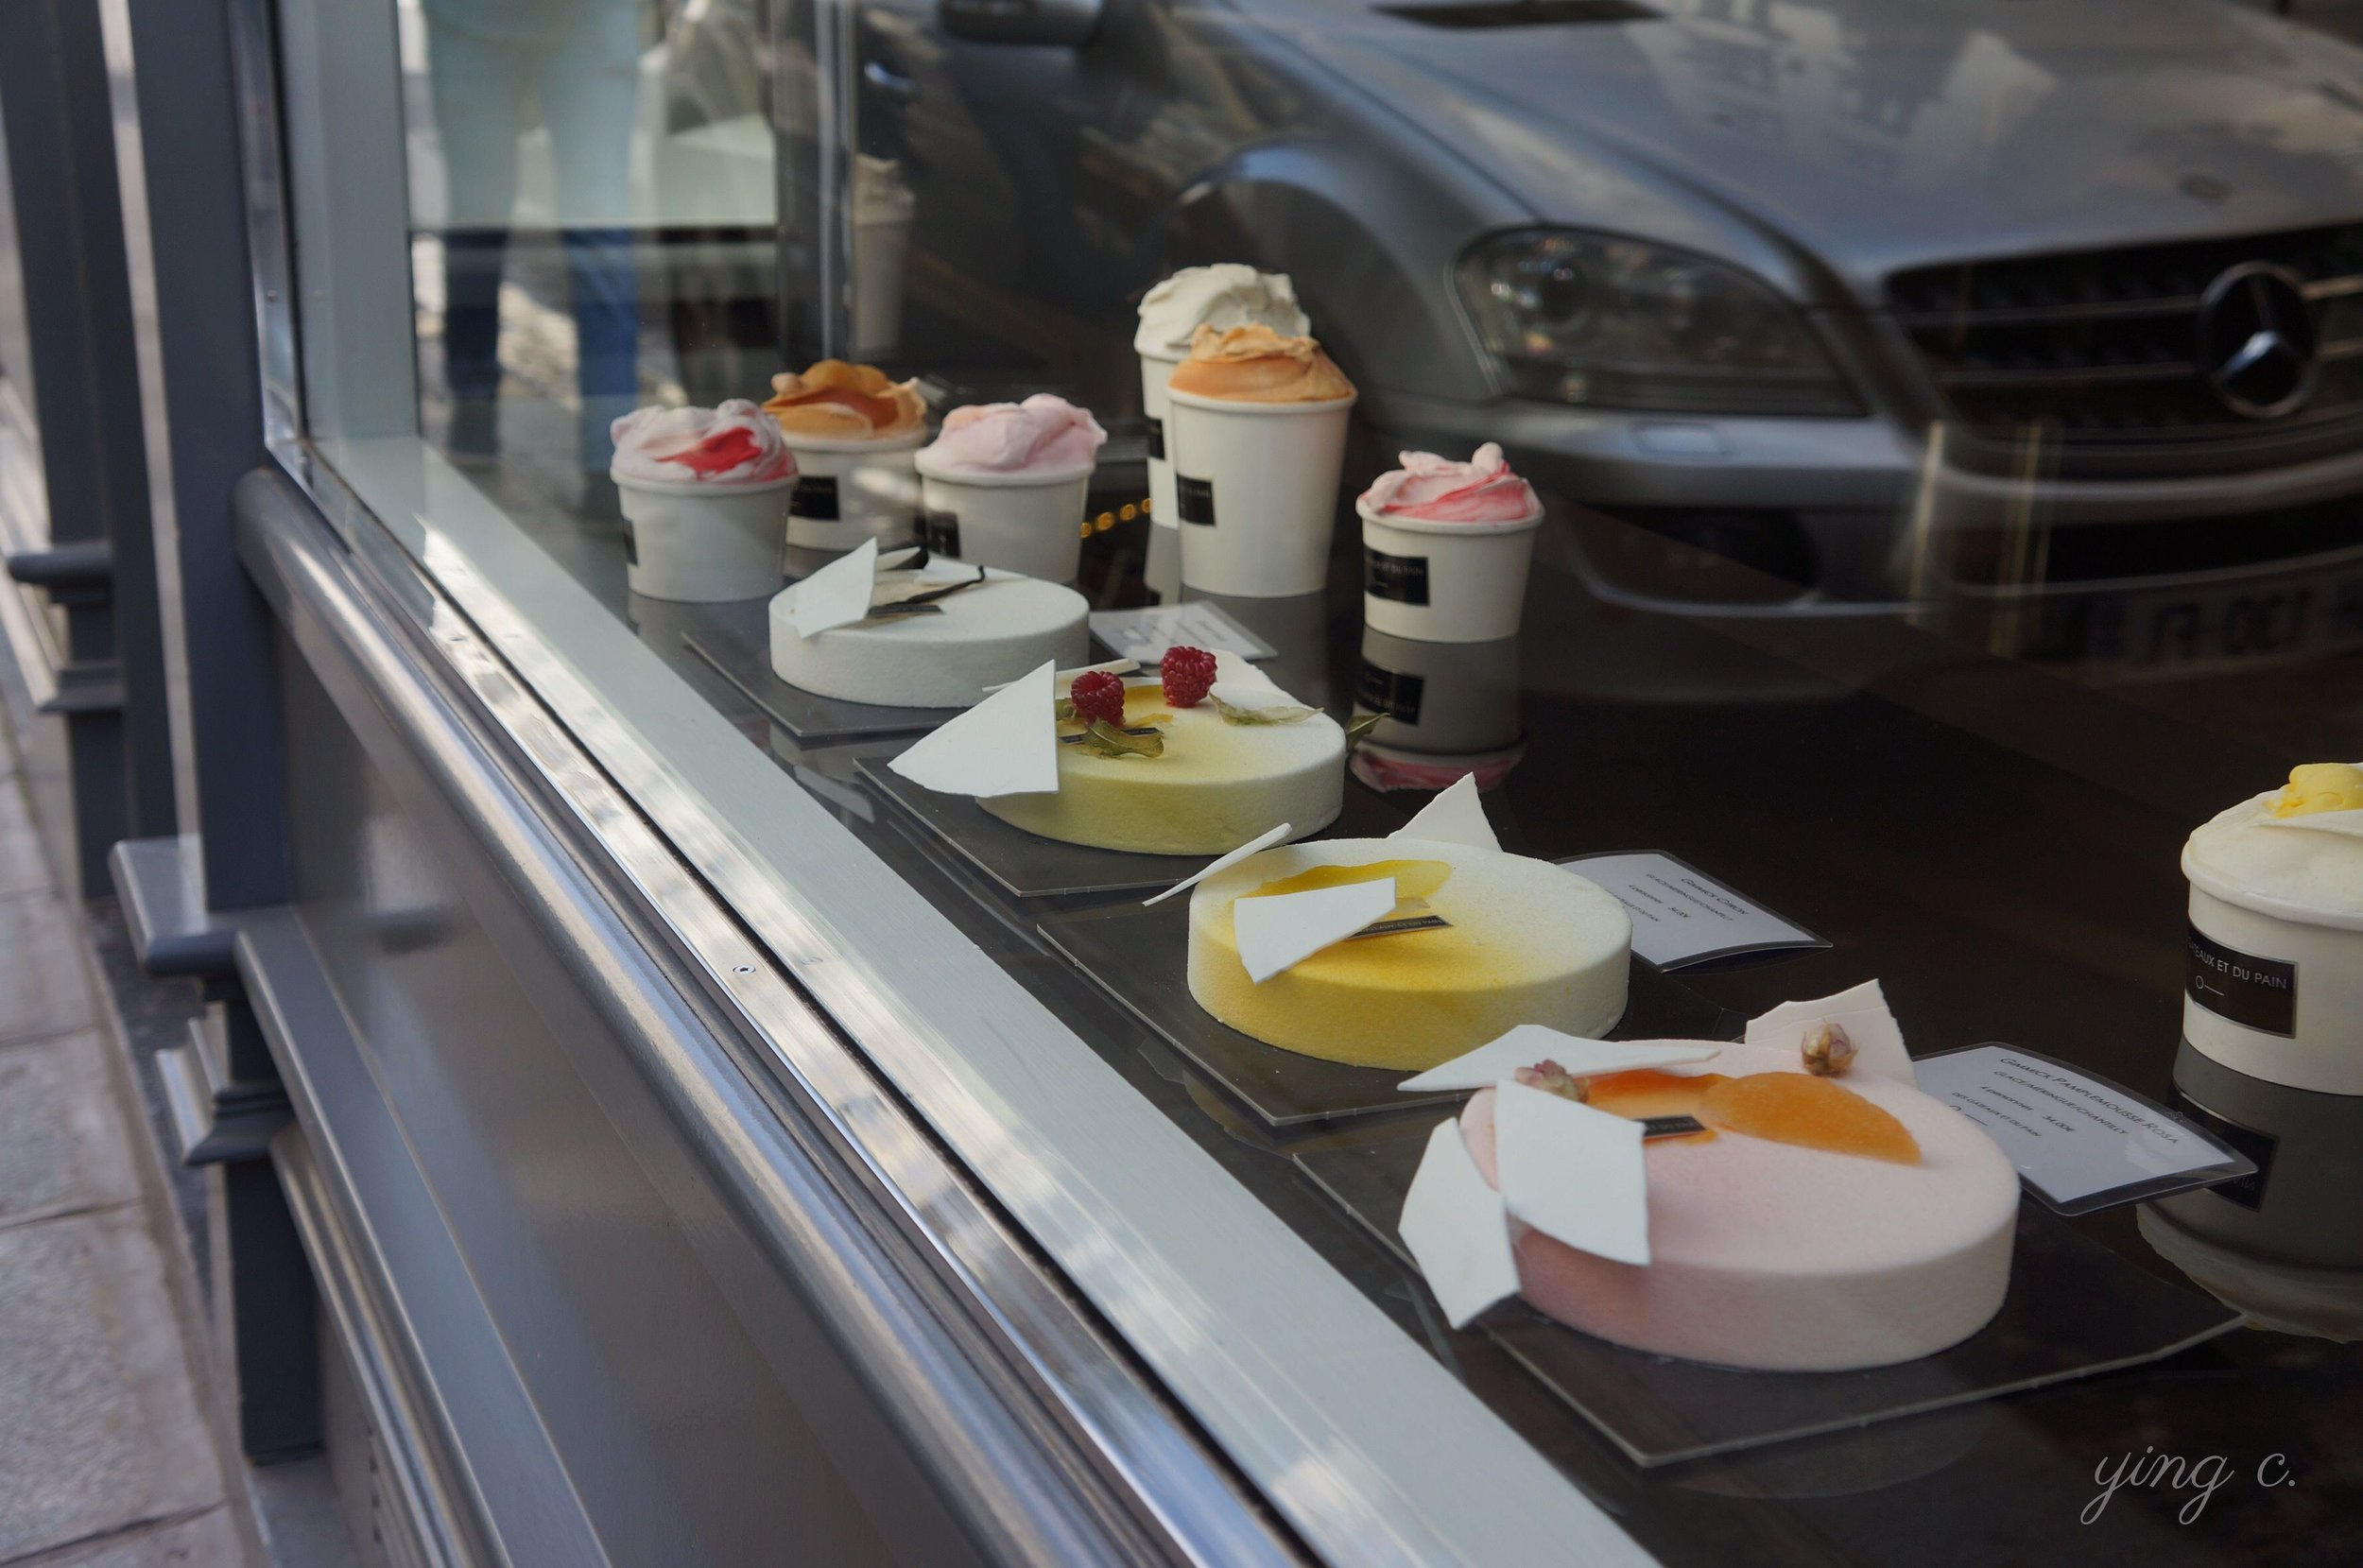 The ice-creams and ice-cream cakes during summer time.  夏天推出的冰淇淋與冰淇淋蛋糕。